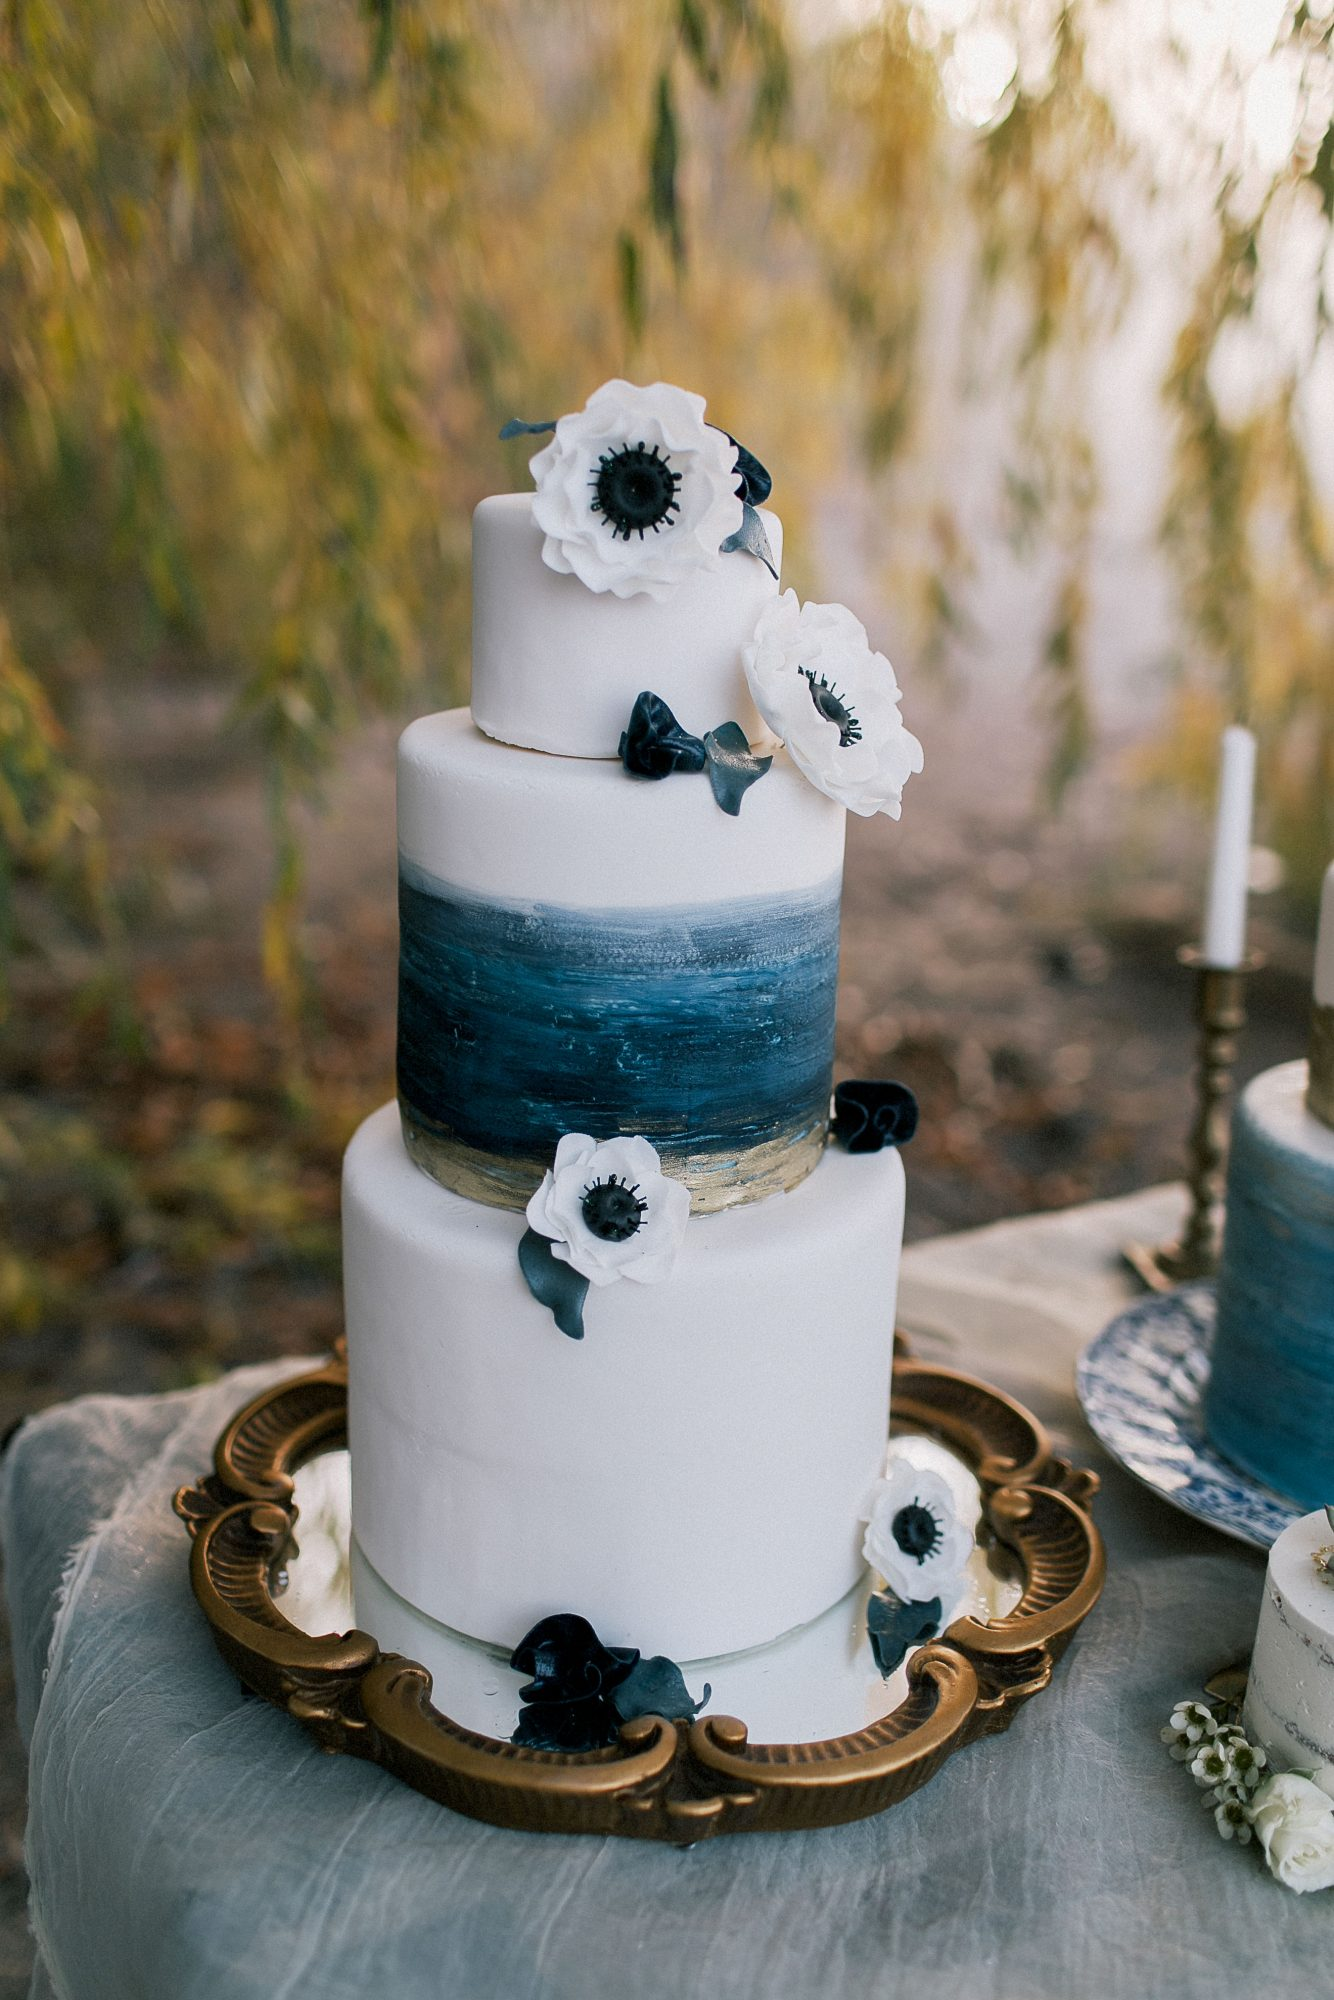 The Cake Baker scattered sugar anemones on this white, blue, and gold dessert.